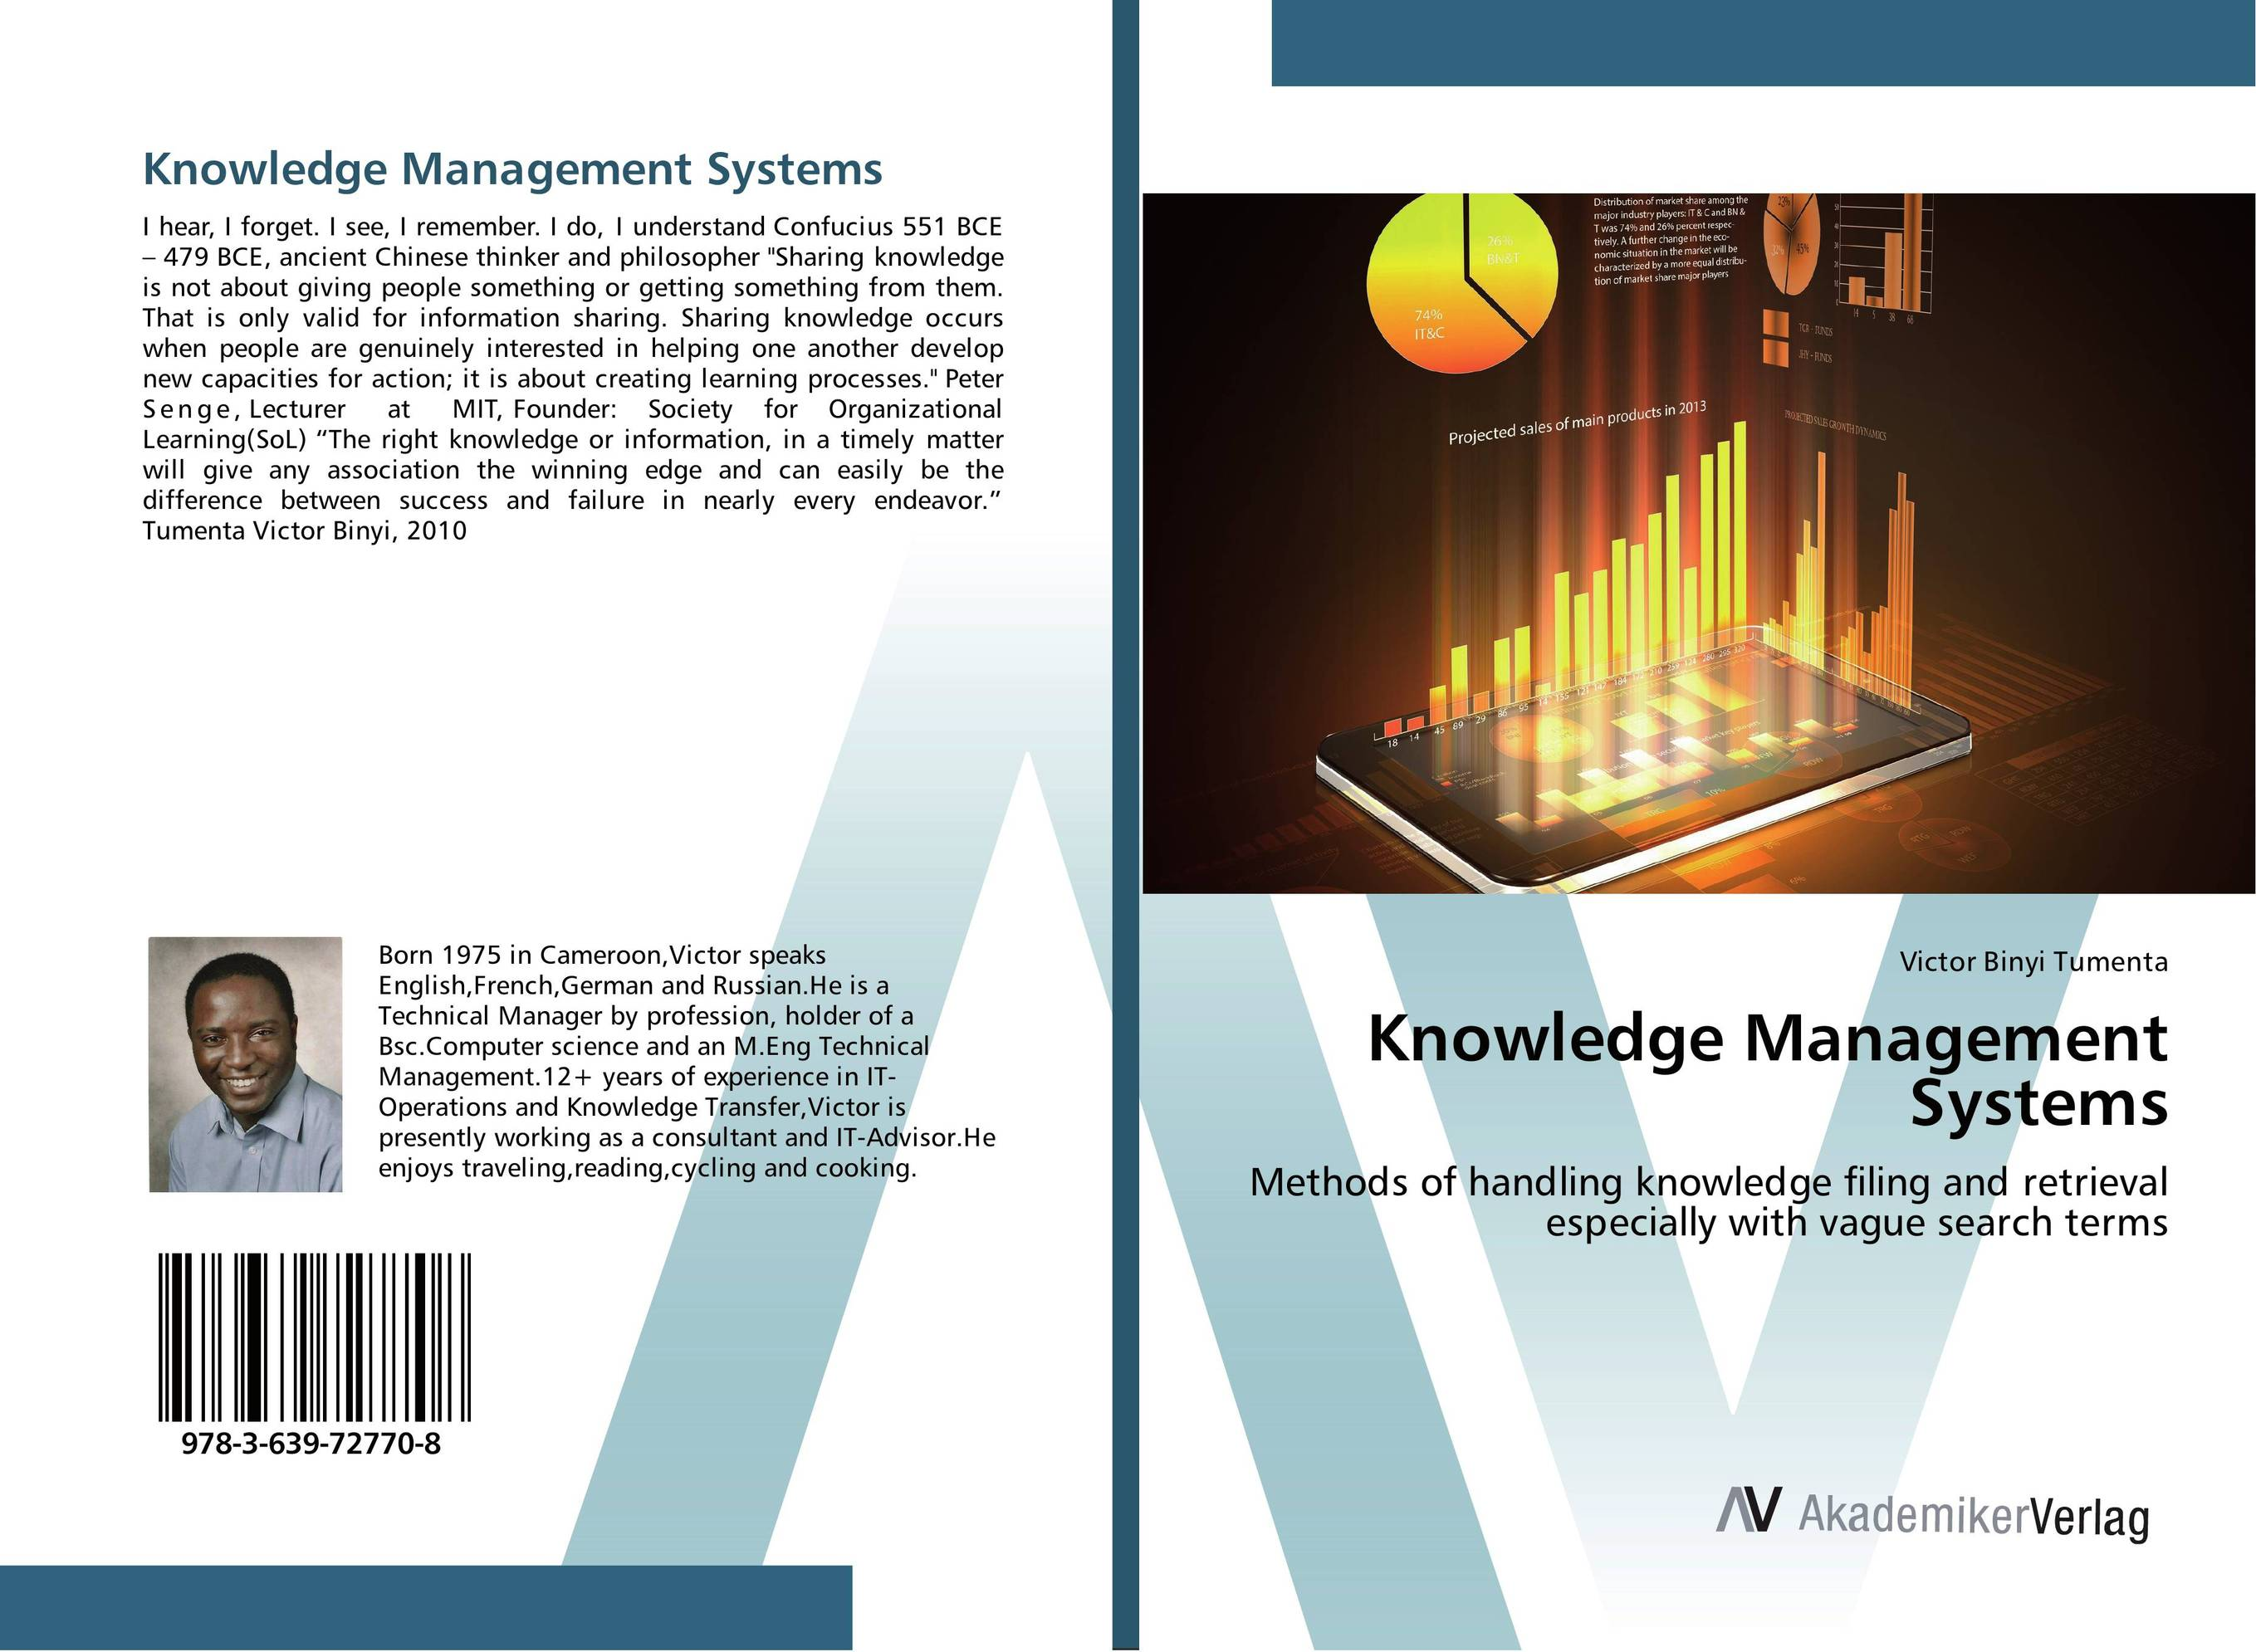 Knowledge Management Systems implementing a knowledge sharing roadmap in small or micro companies